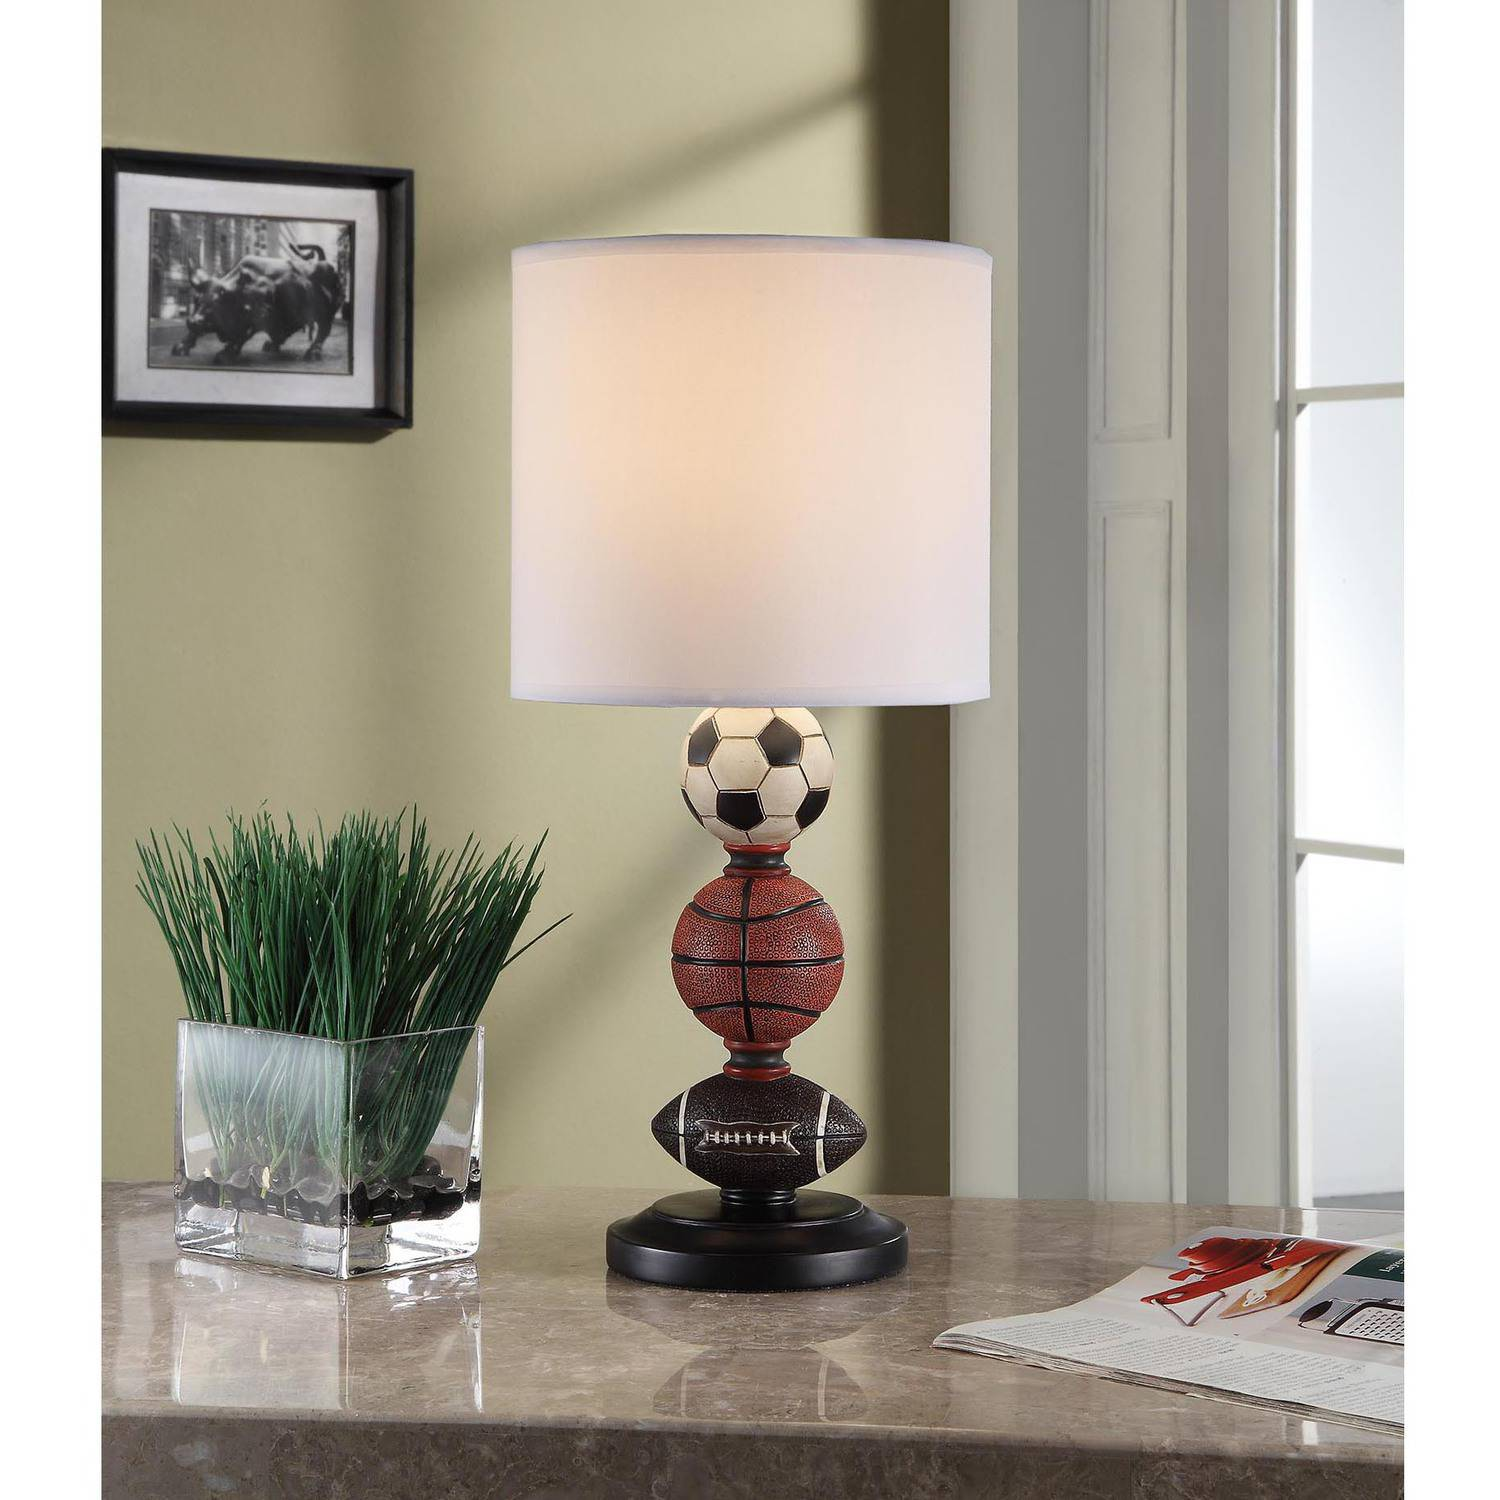 ... Your Zone Sports Table Lamp With CFL Bulb